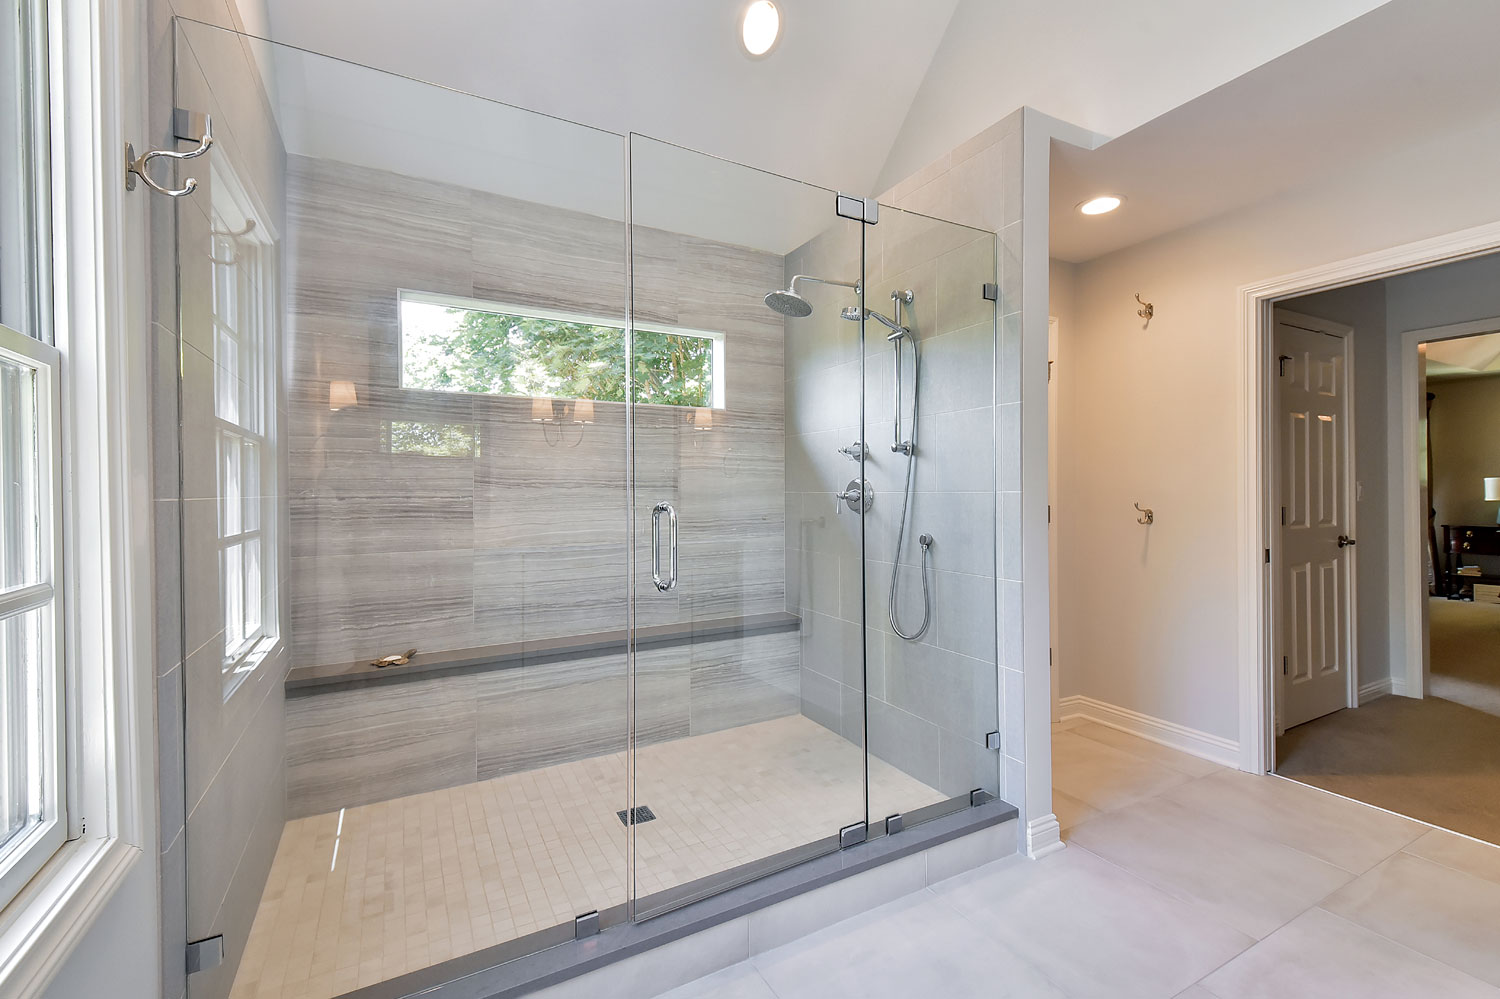 Carl susan 39 s master bathroom remodel pictures home for Bath remodel ideas